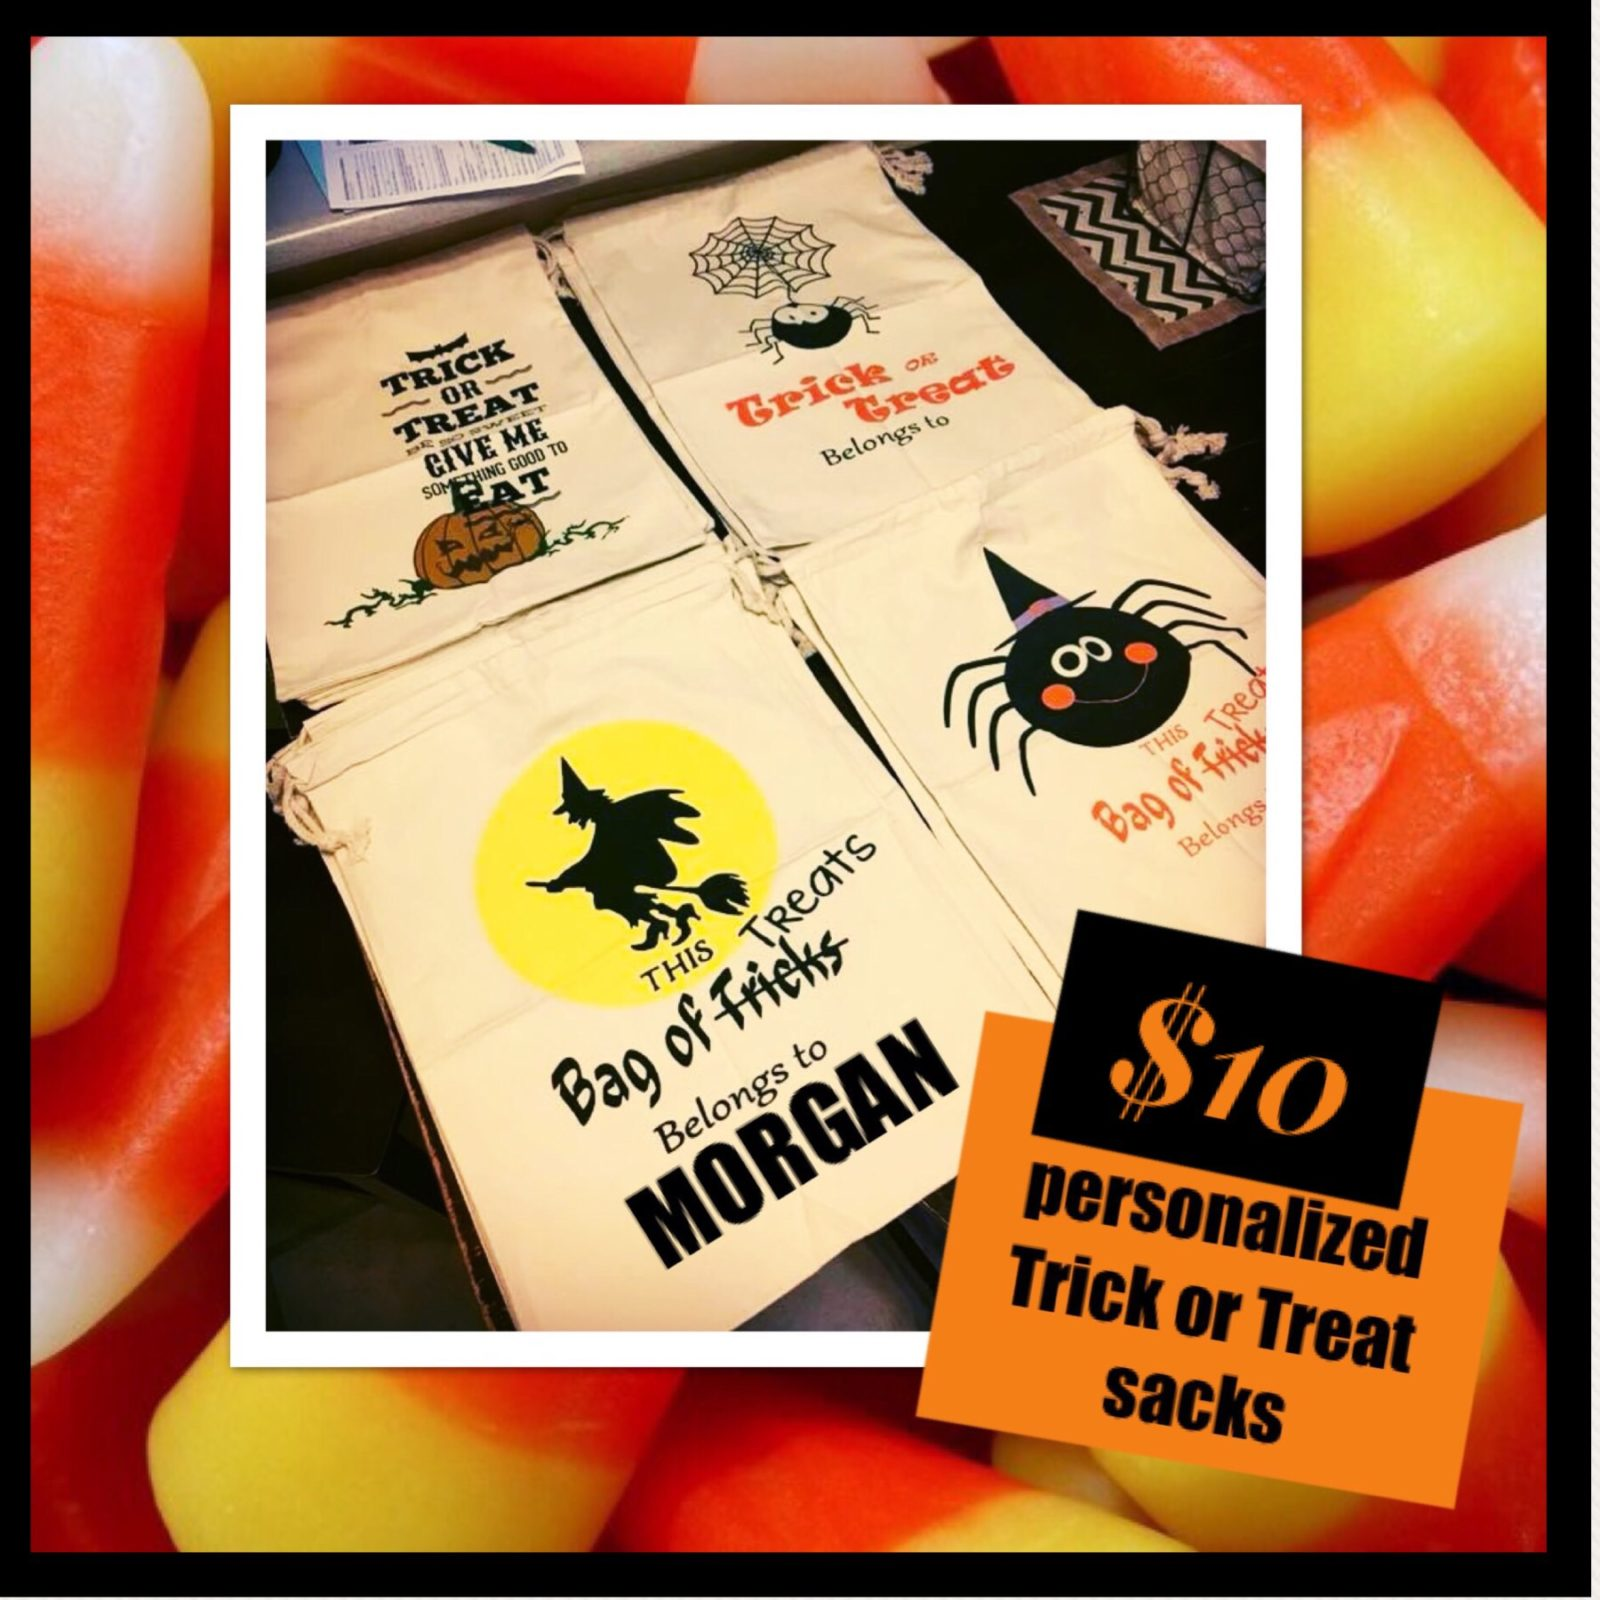 Personalized Trick or Treat sacks ready for Friday night pick up!